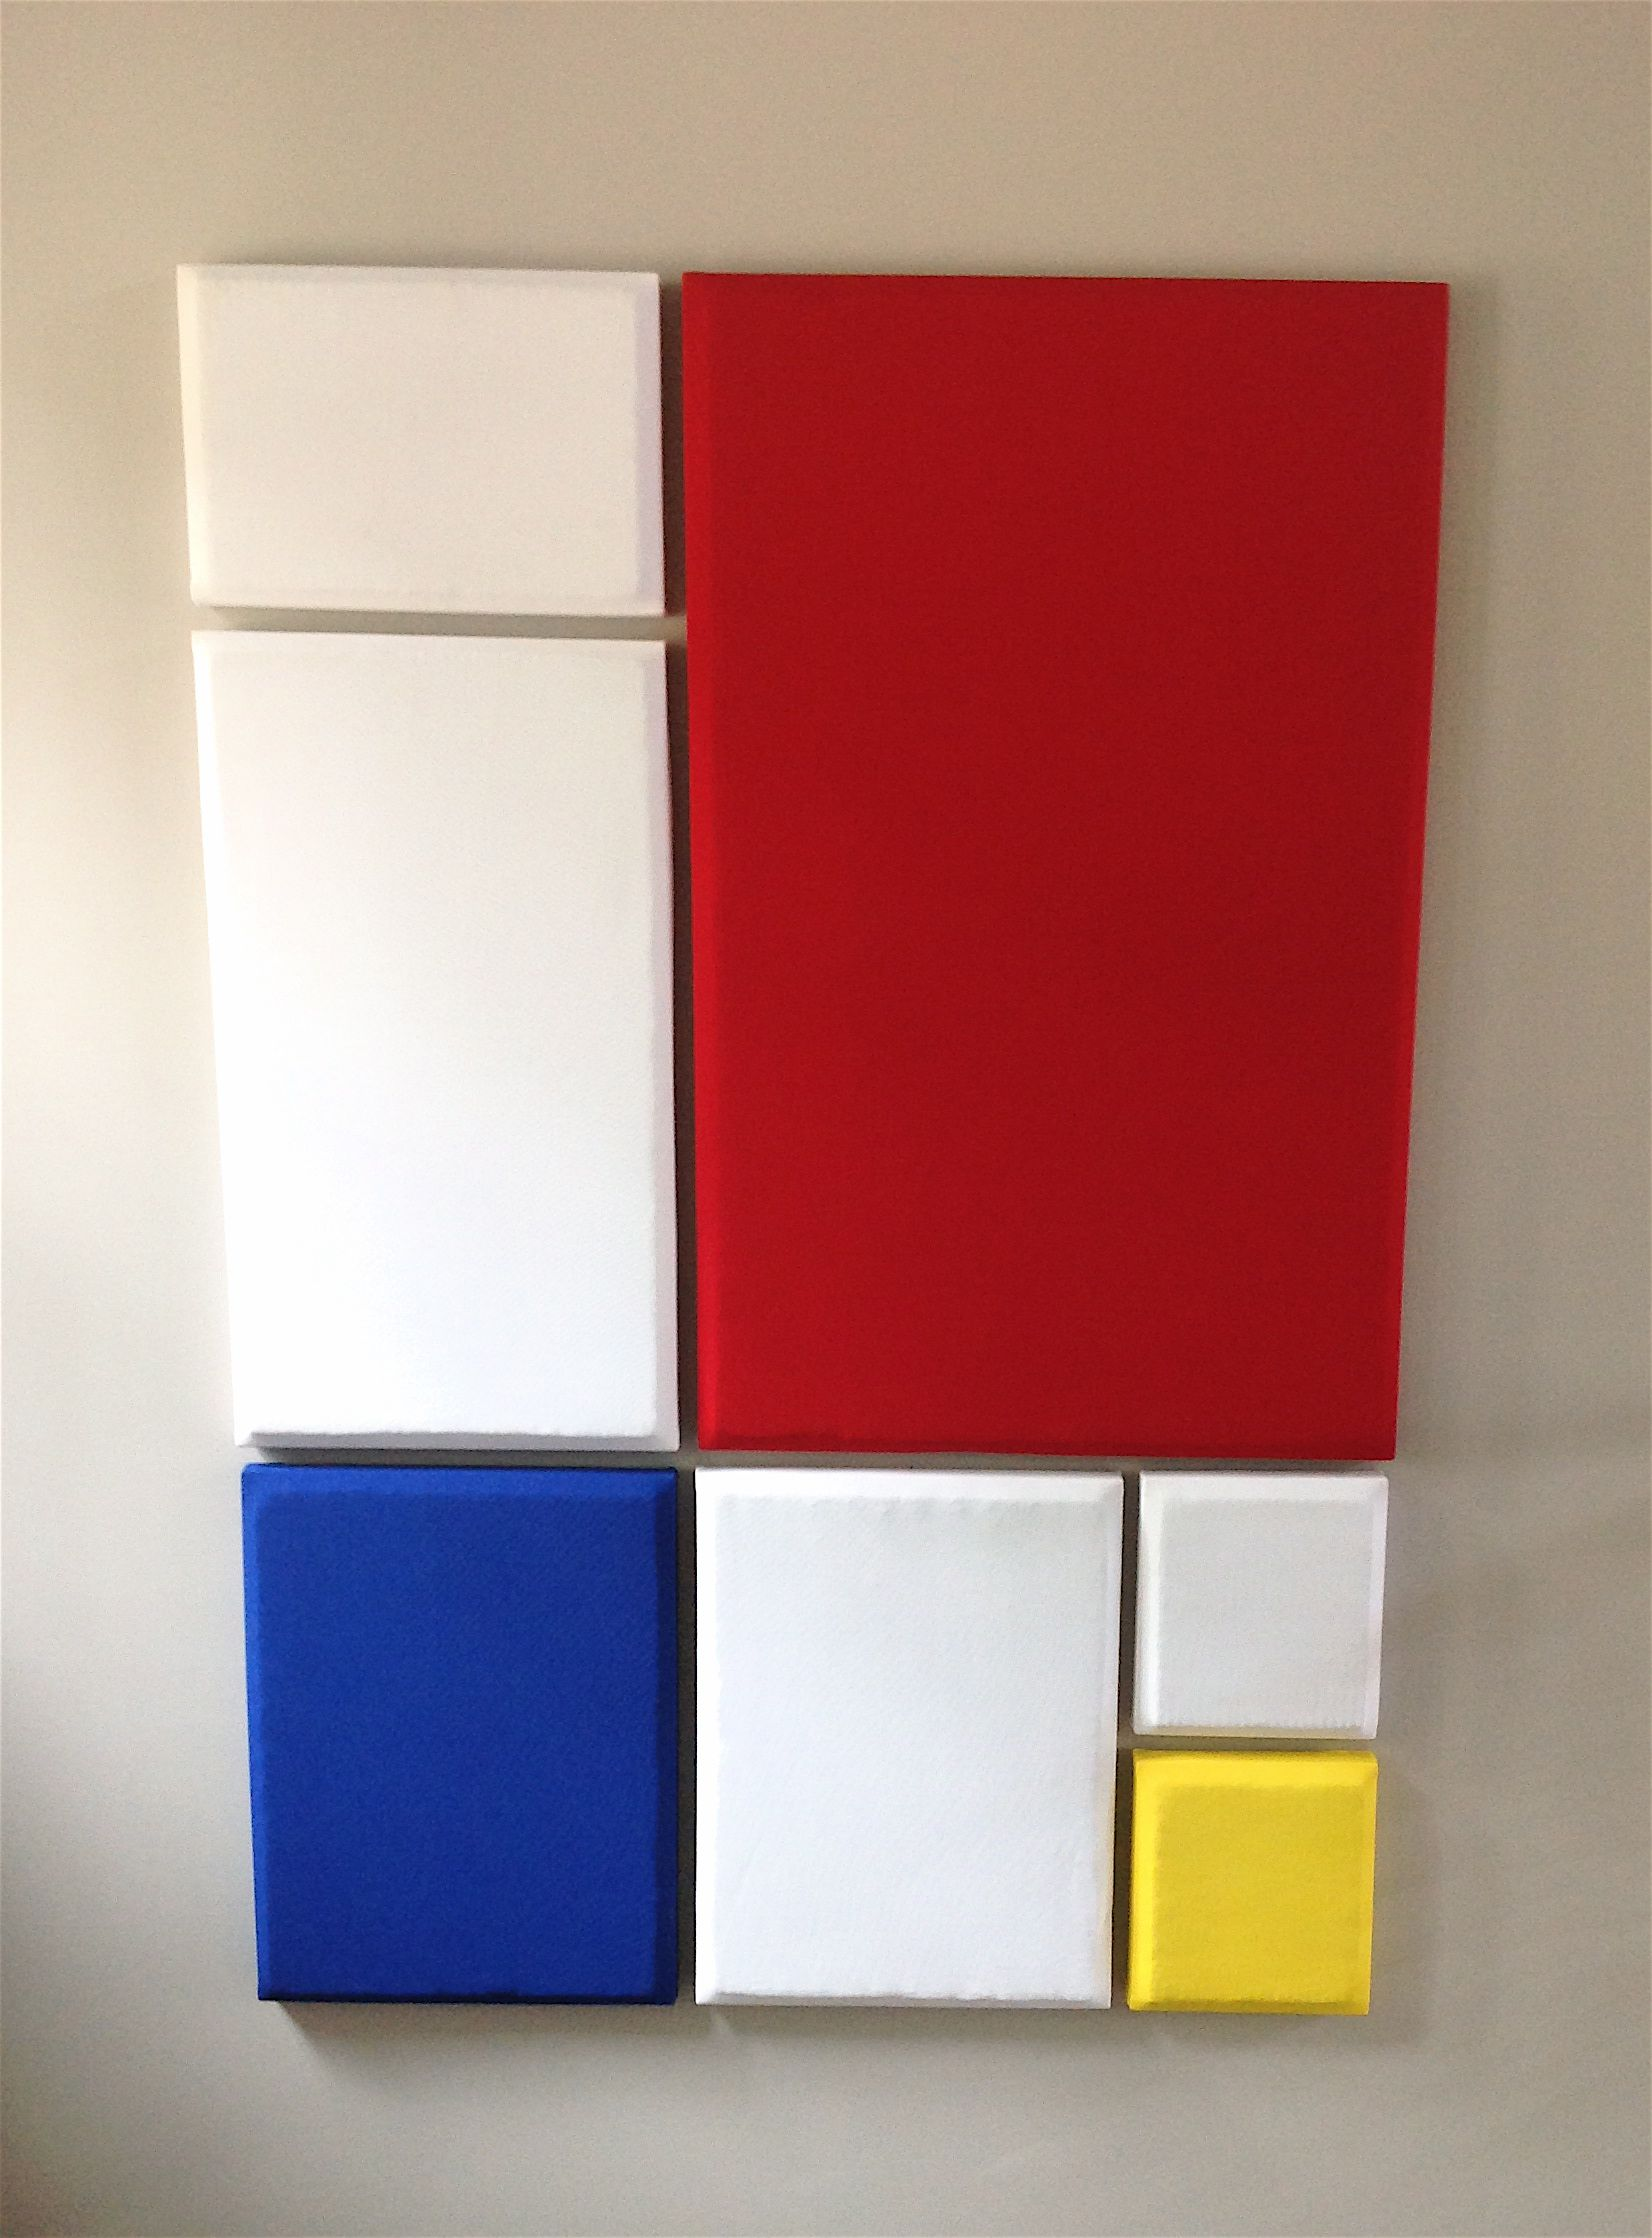 Acoustic absorption panels masquerading as Mondrian art  | House <3